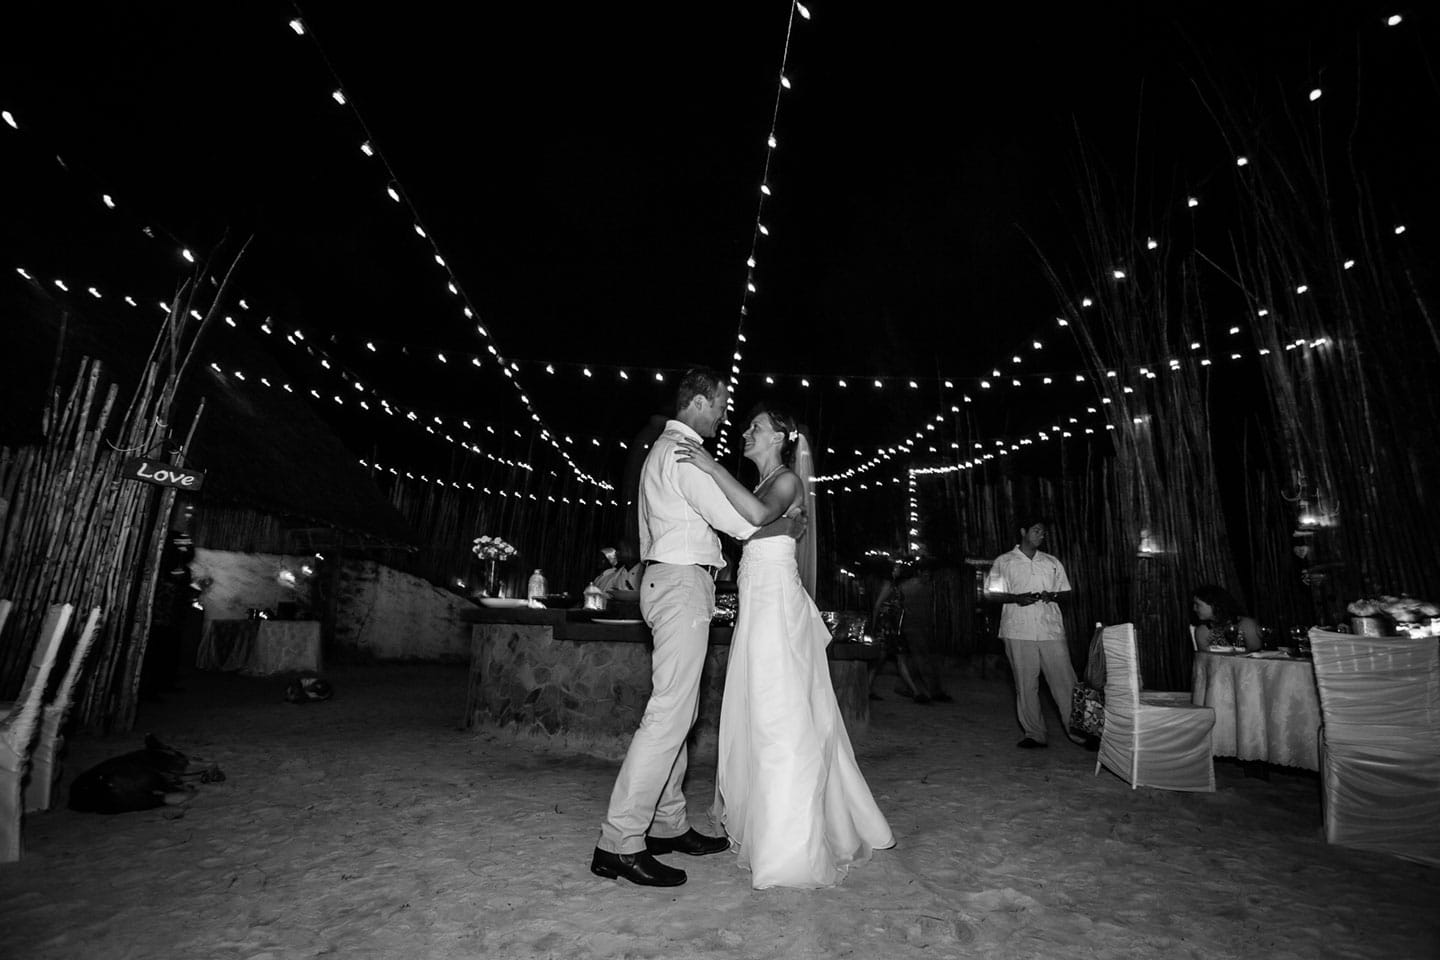 41-Zanzibar-wedding-photographer